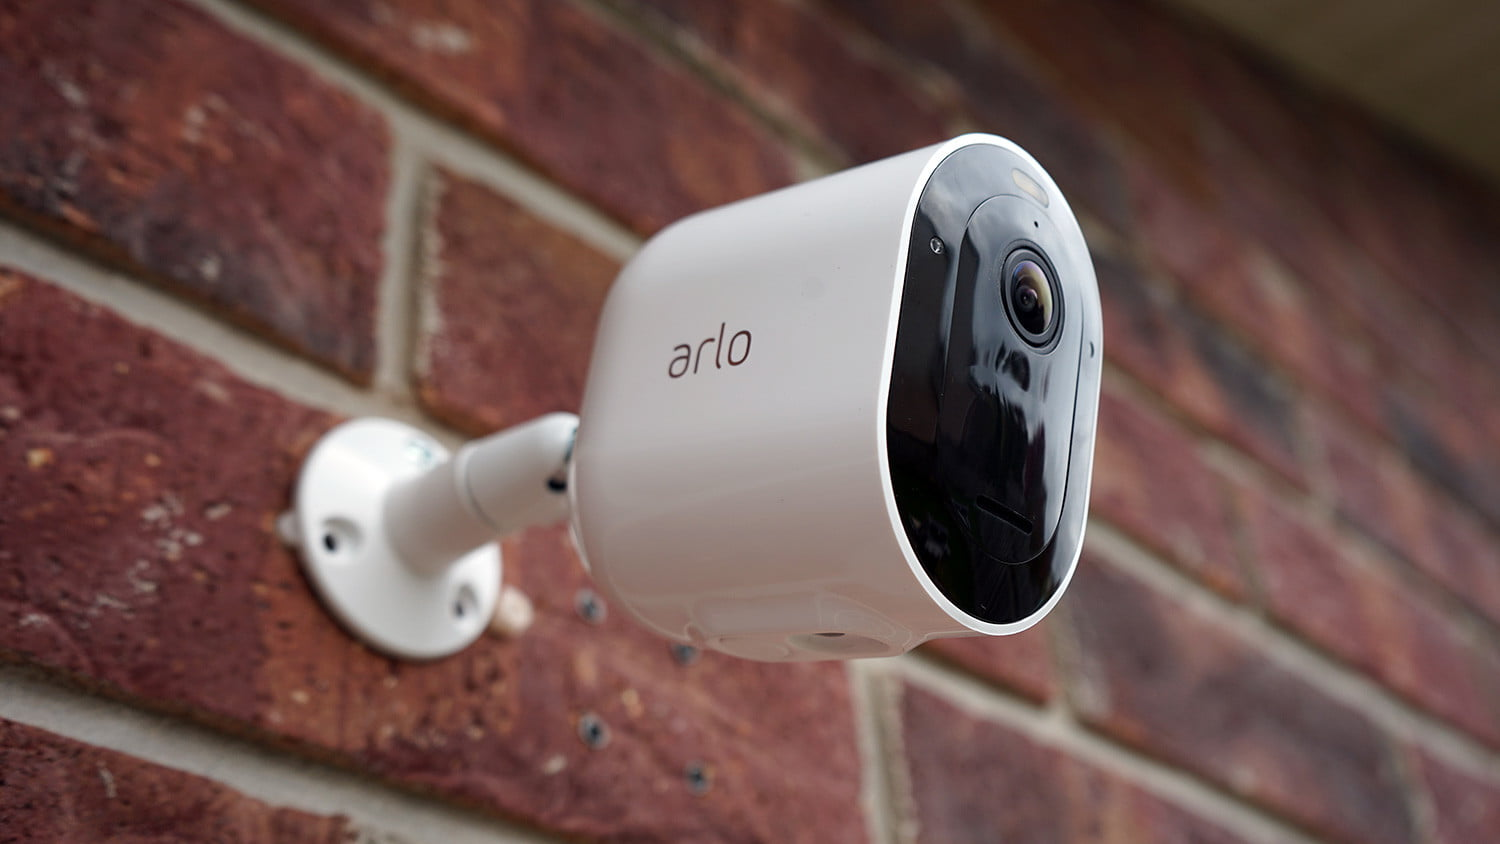 Arlo Pro 3 Review: A Great Choice For Smart Home Security